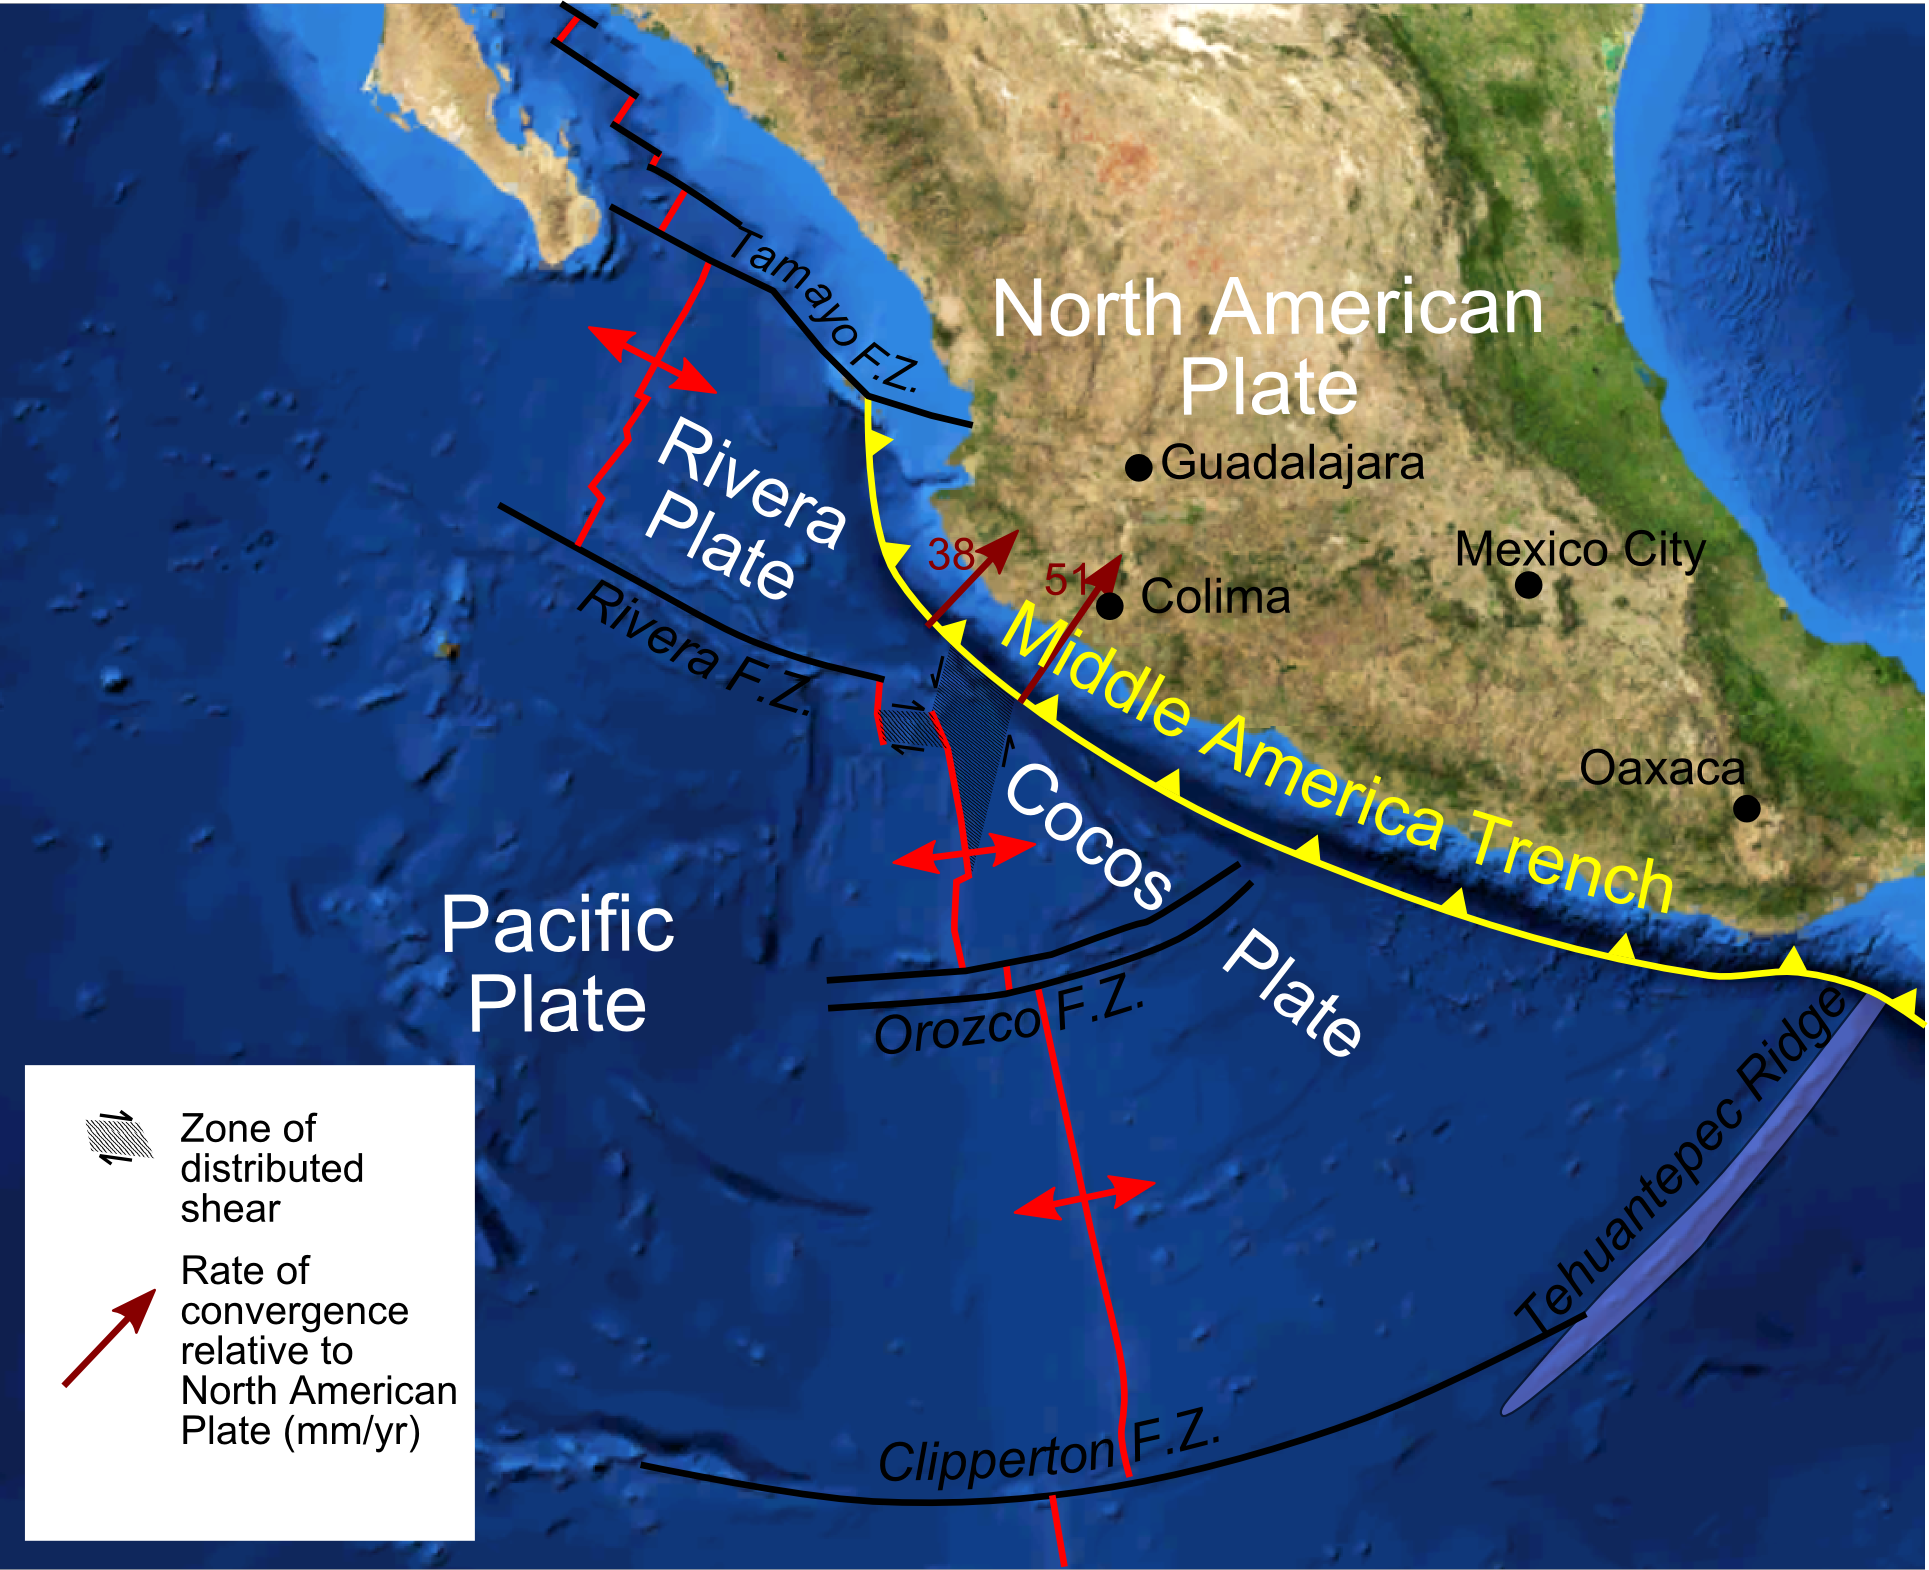 File:Tectonic setting western Mexico.png - Wikimedia Commons